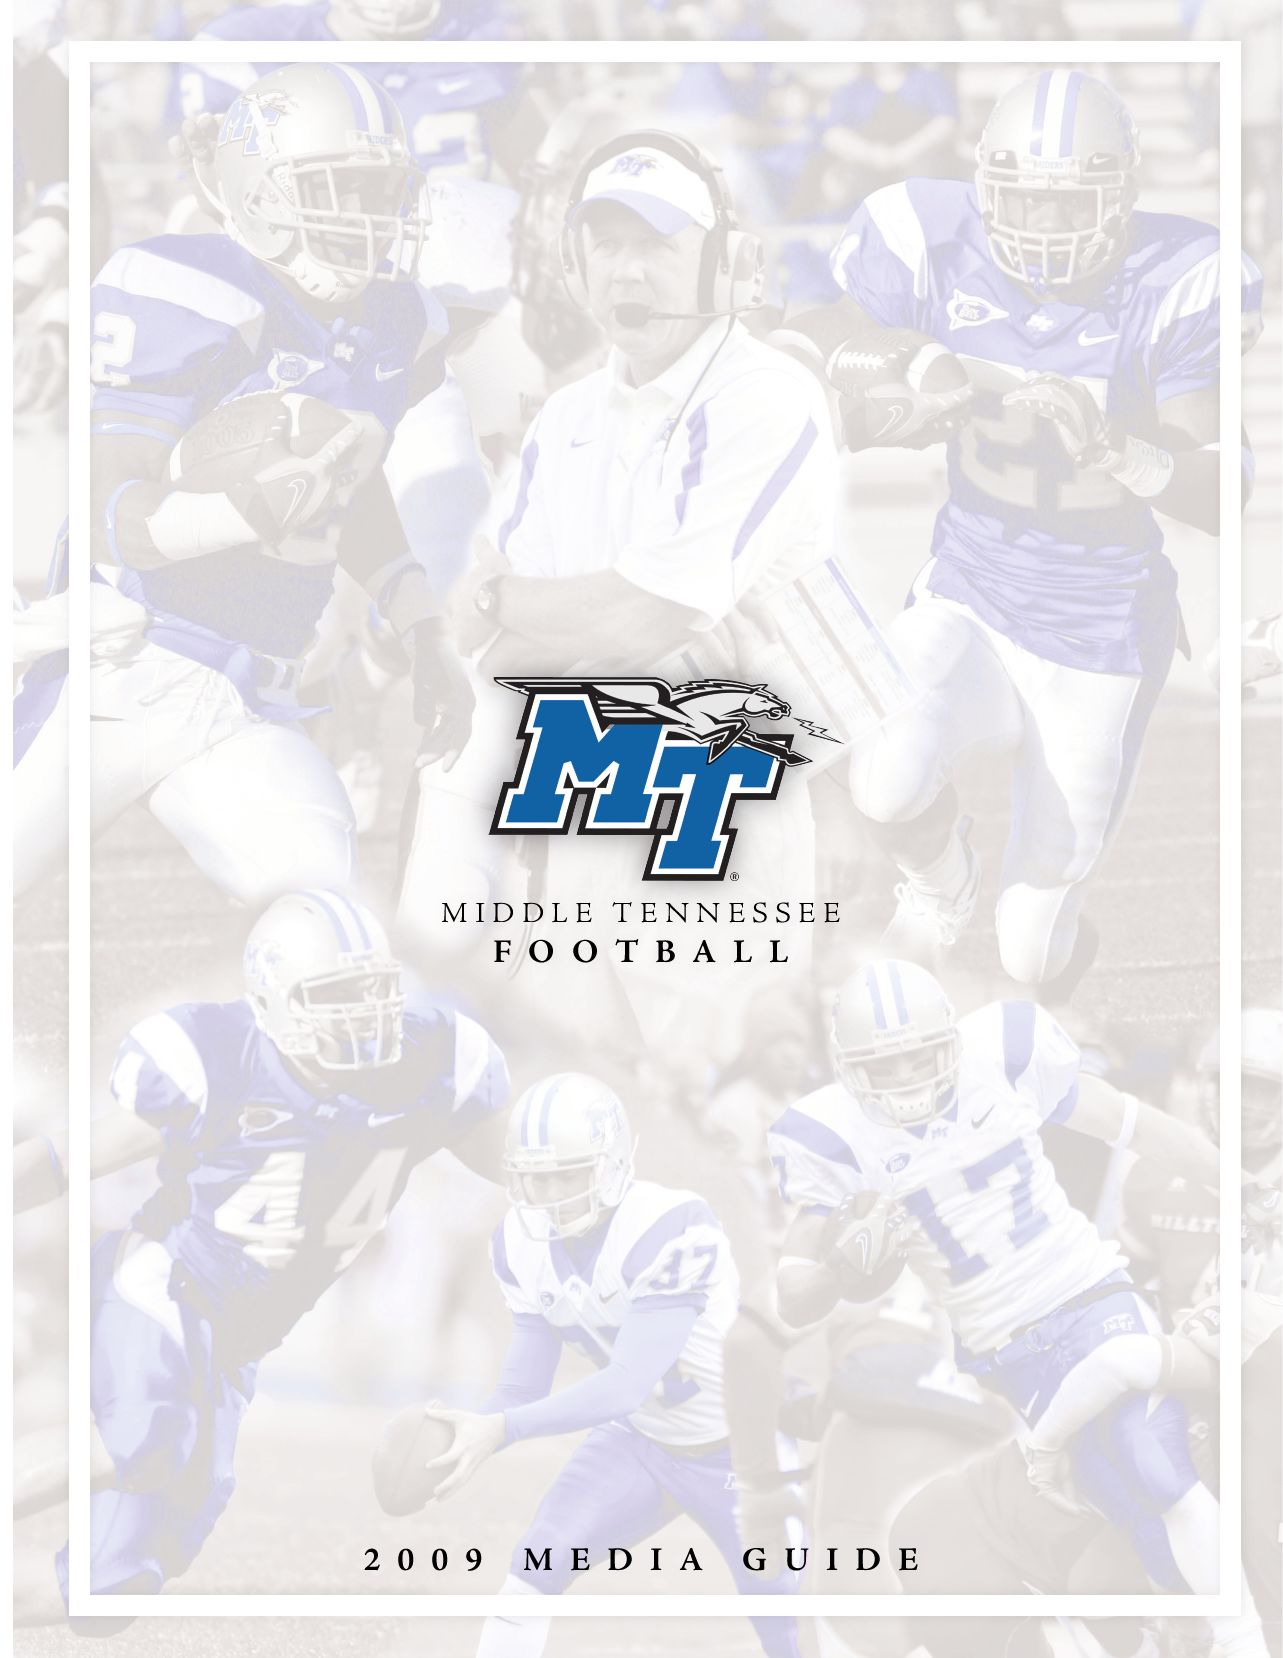 2009 middle tennessee football media guide by middle tennessee state2009 middle tennessee football media guide by middle tennessee state university issuu